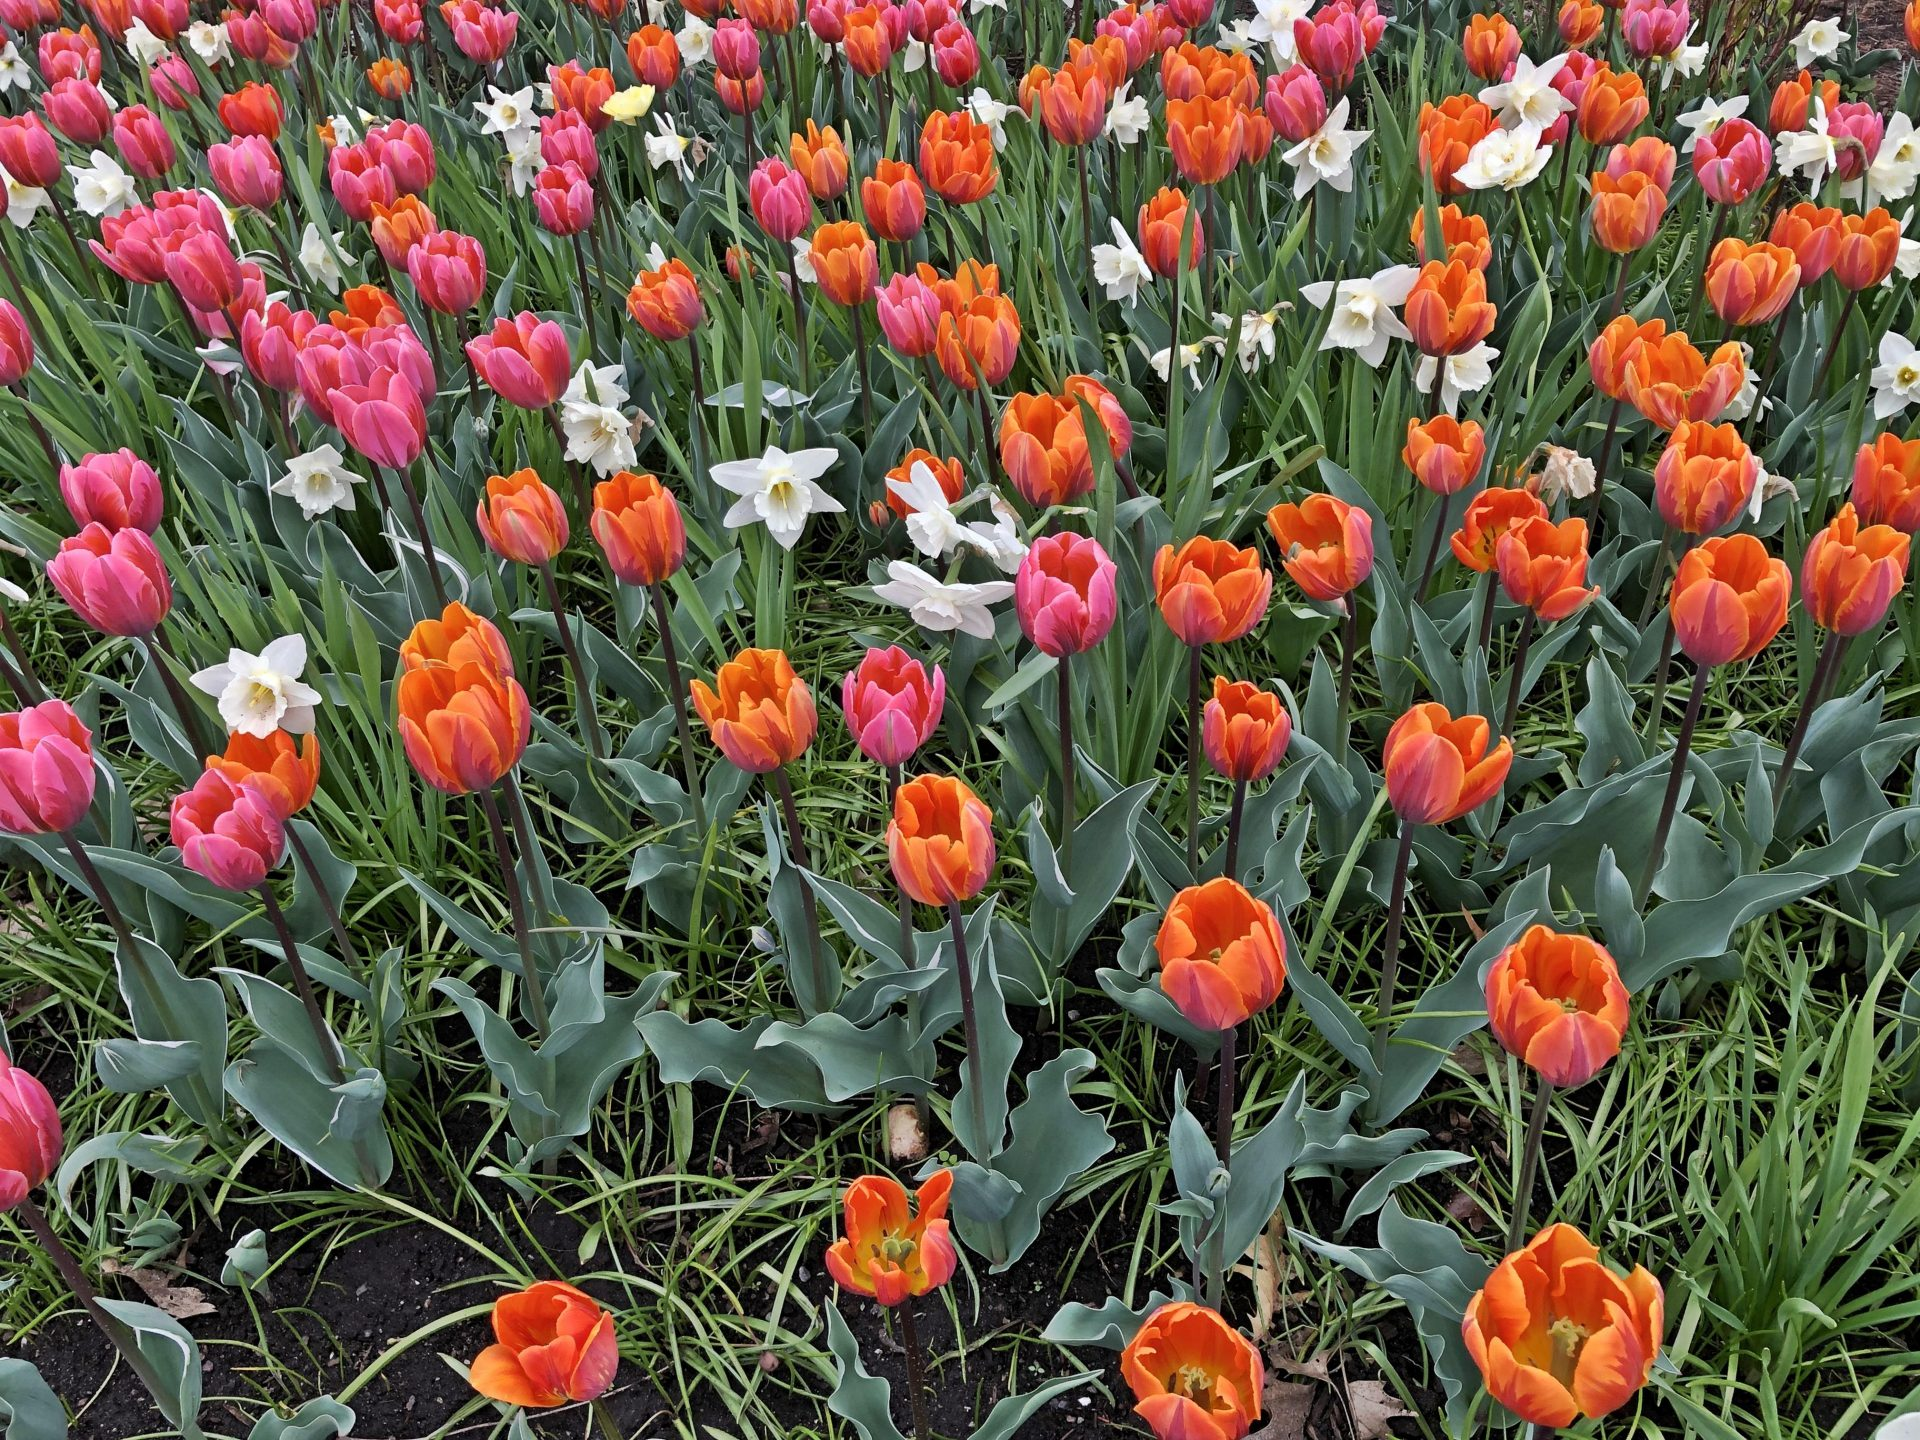 There are 300,000 tulips in full bloom, in over 80 different breeds displayed in 27 different gardens. (Image: Billy Shyu / Vision Times)